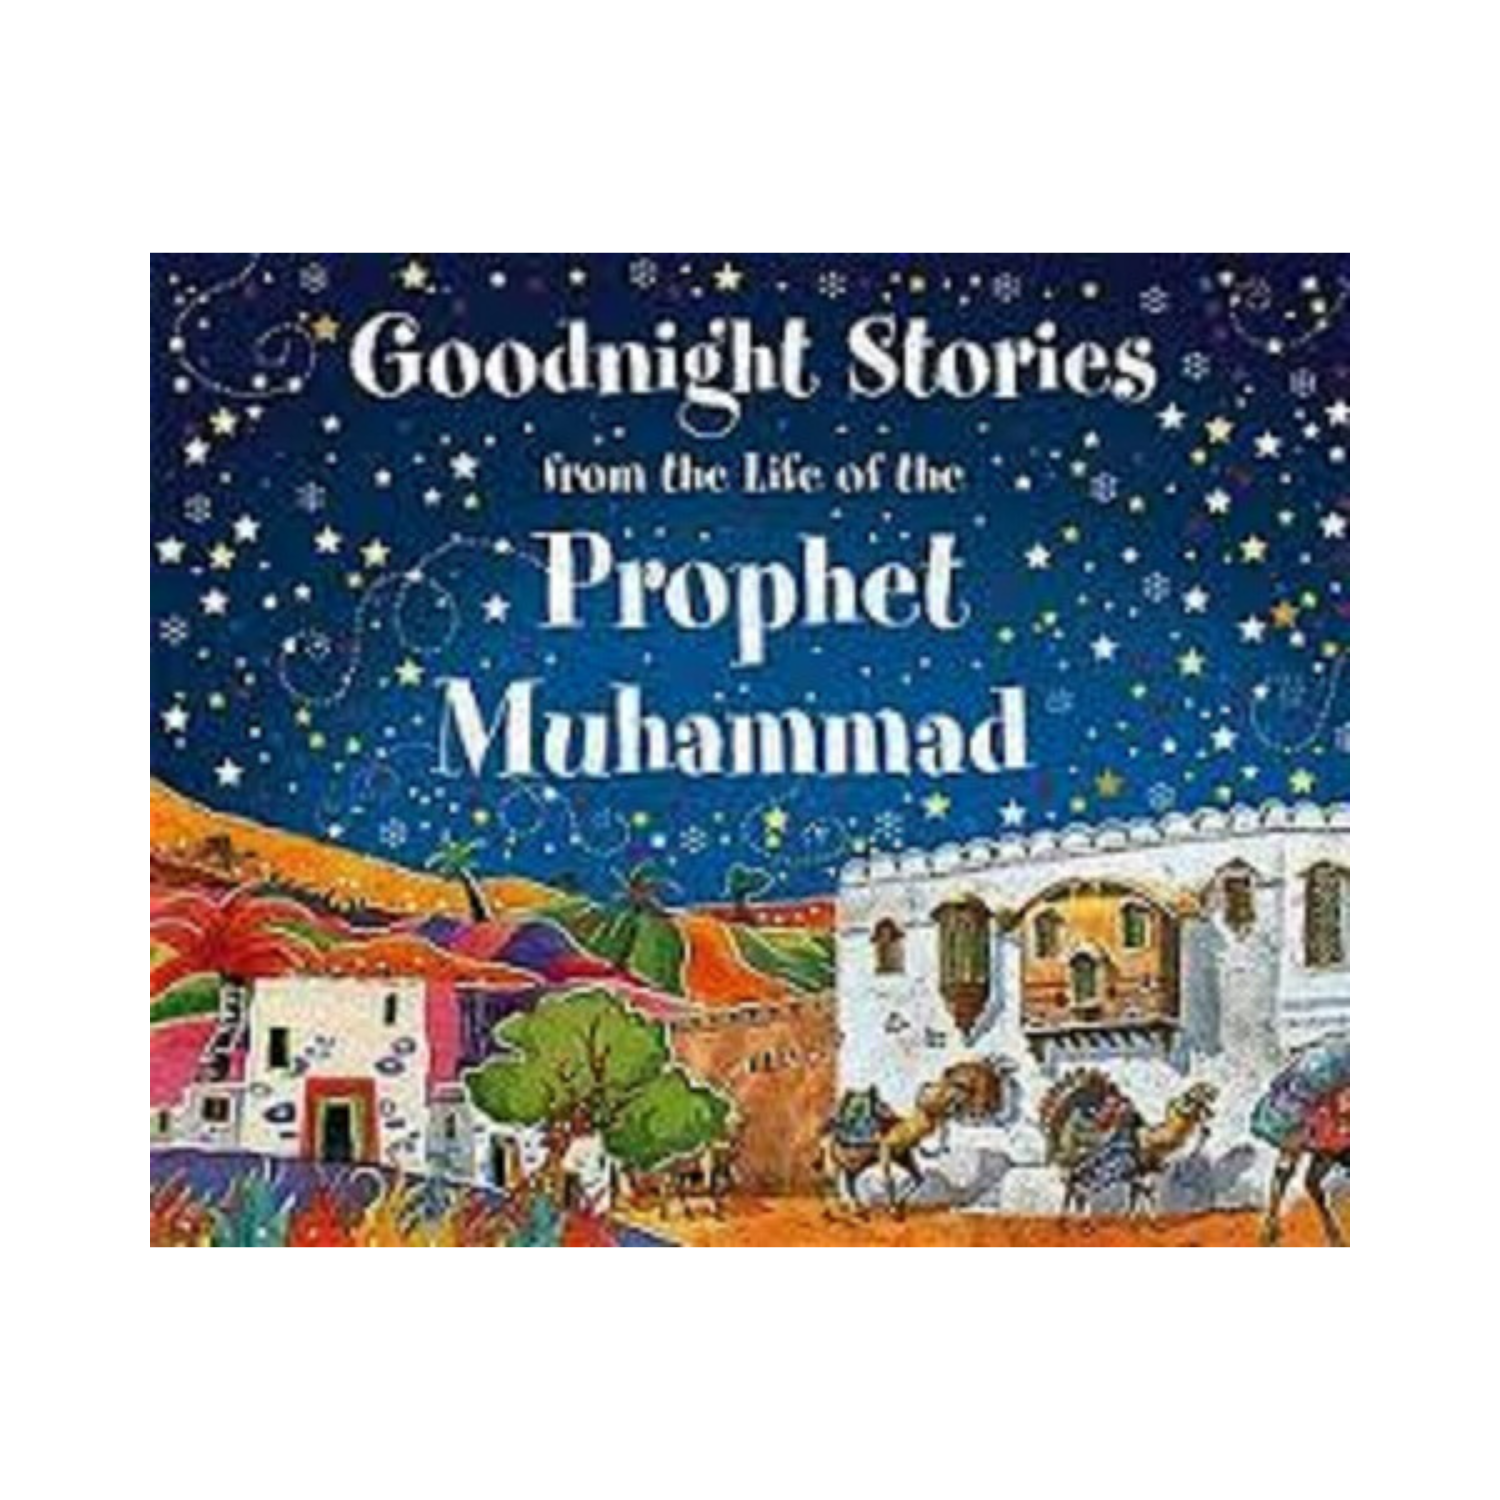 Goodnight Stories from the Life of the Prophet Muhammad Islamic educational Book for Kids and Children